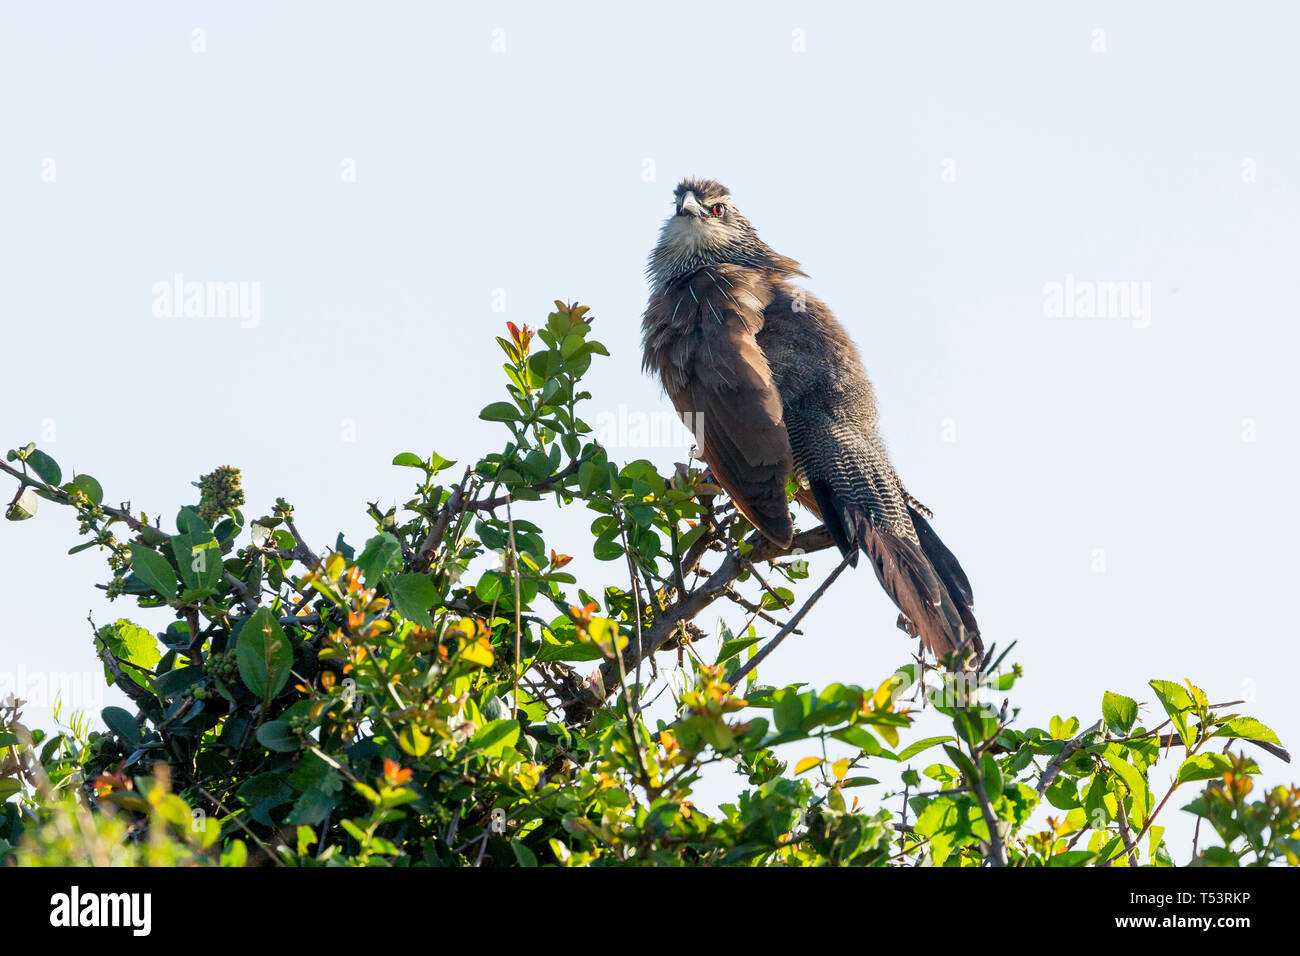 A White-browed coucal on top of a bush looking around, close side view, Ol Pejeta Conservancy, Laikipia, Kenya, Africa - Stock Image